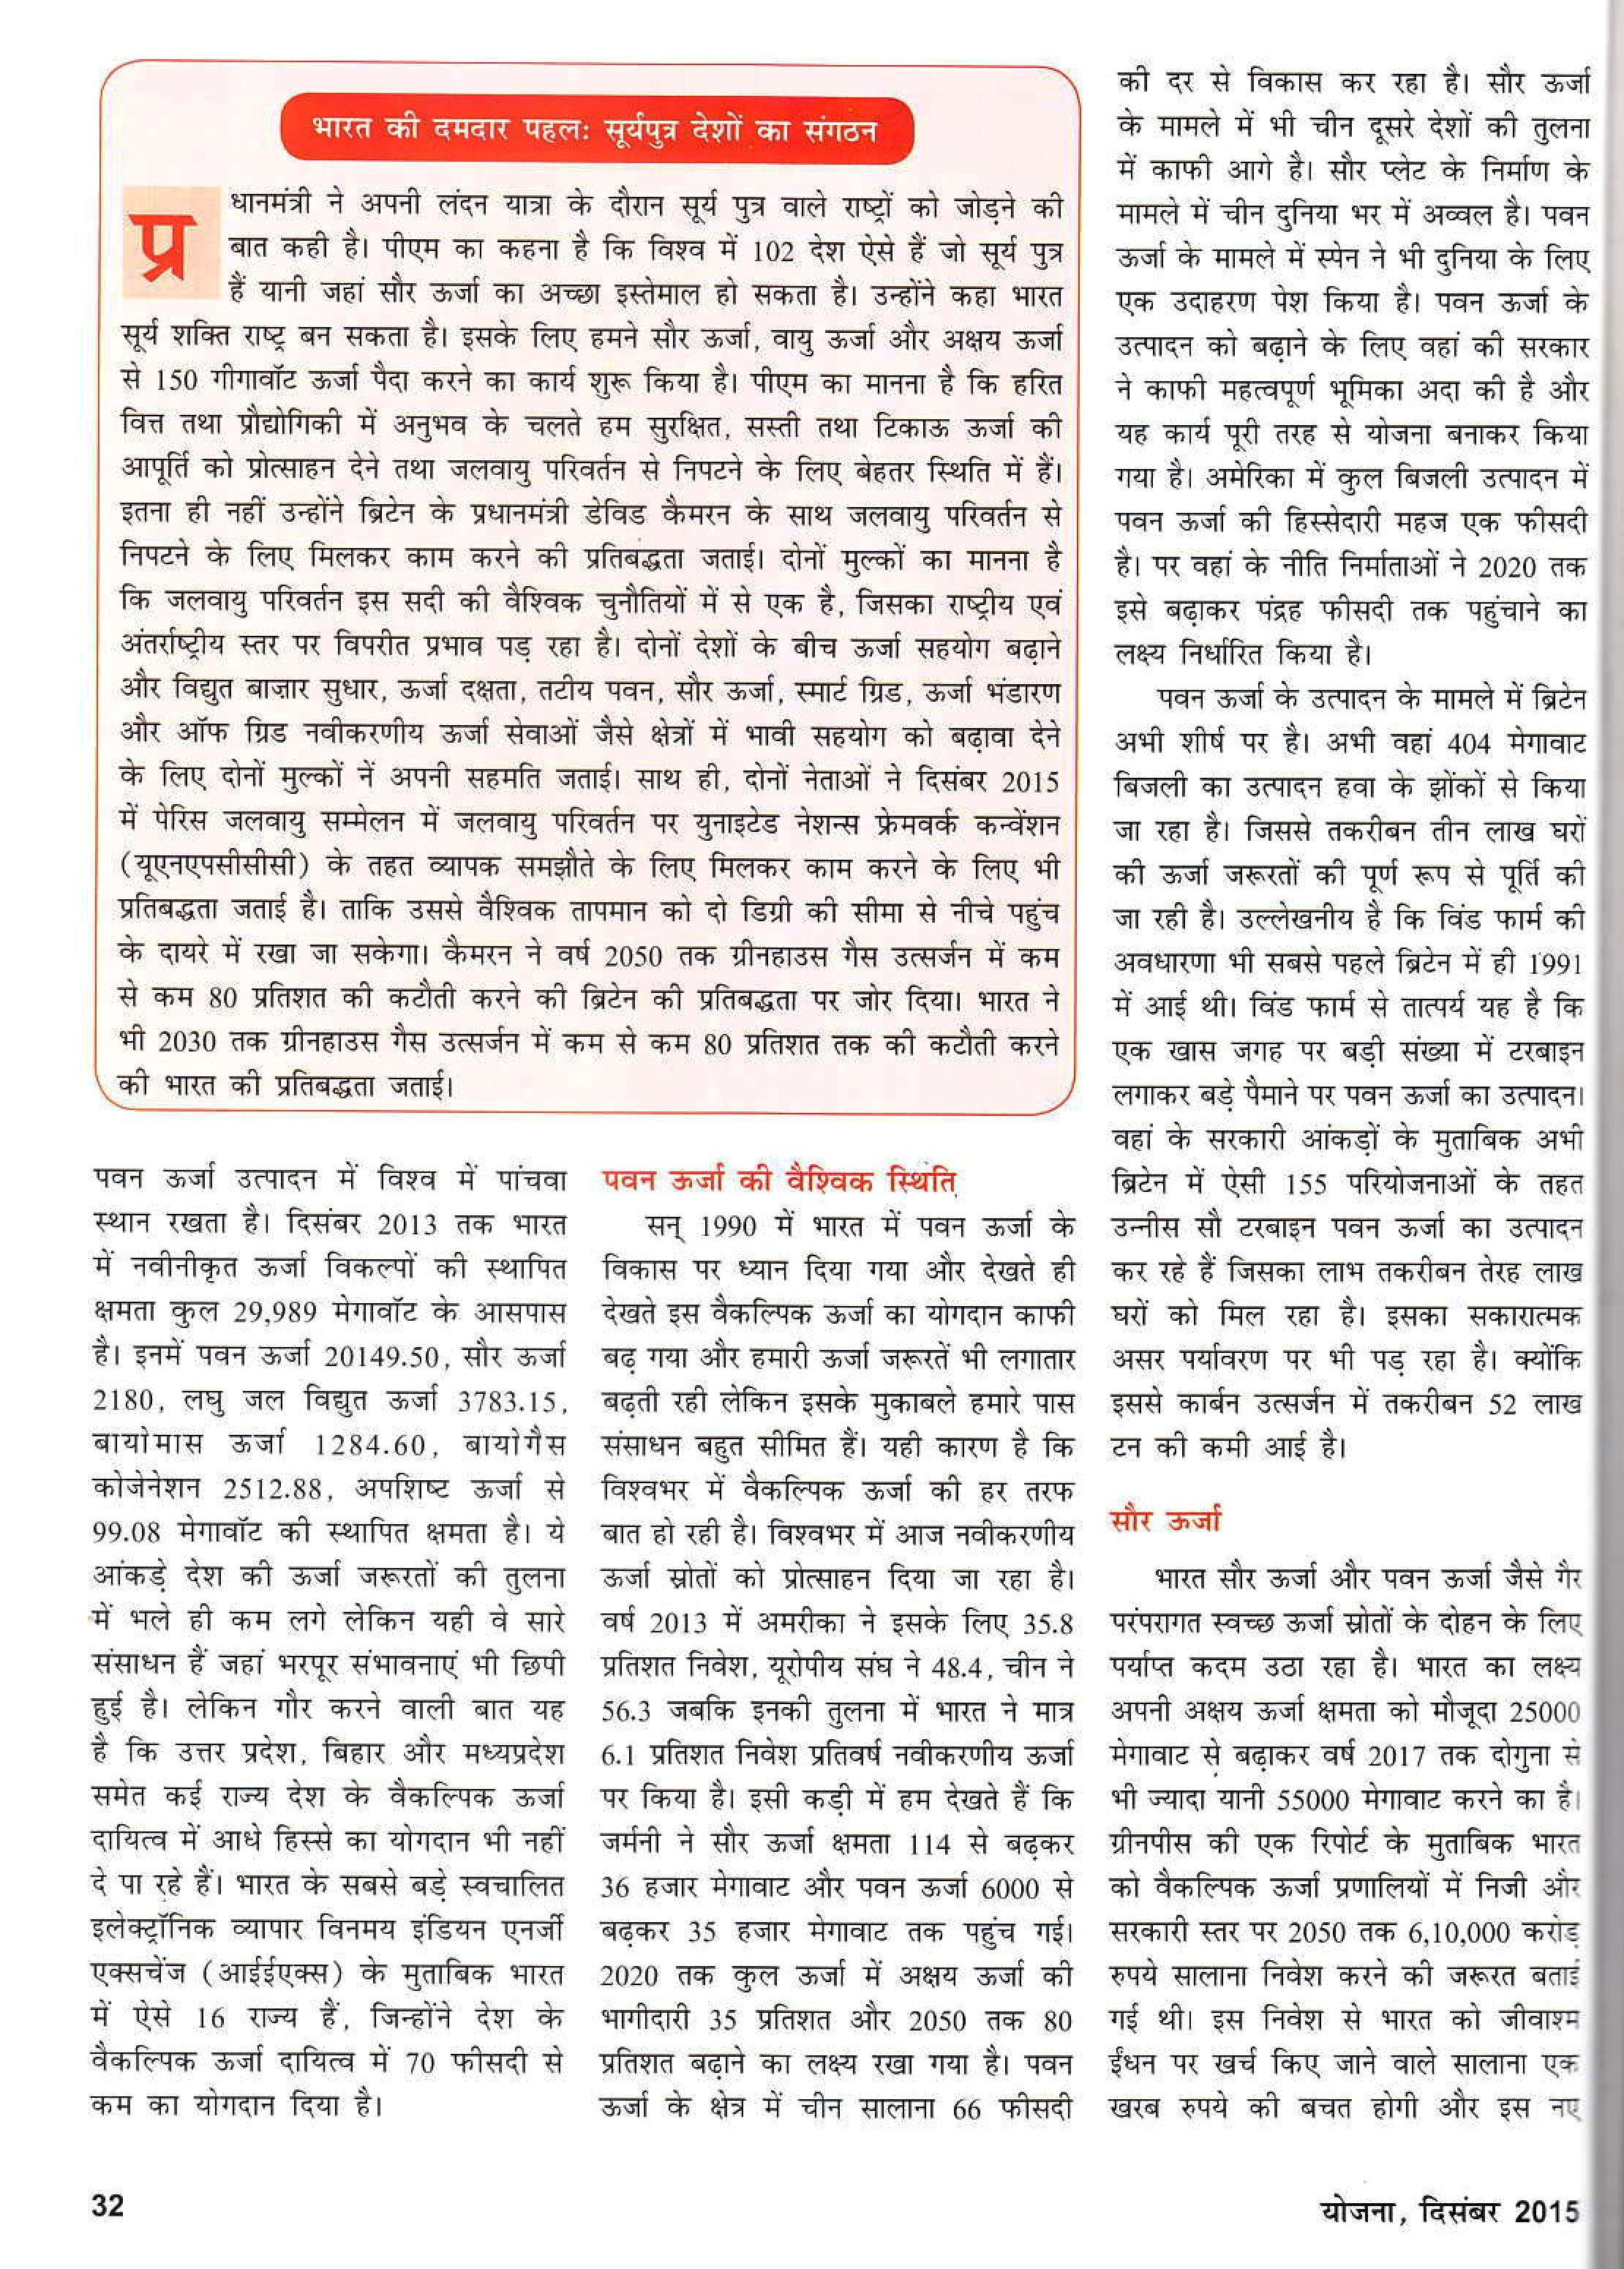 IMG_0001-page-002